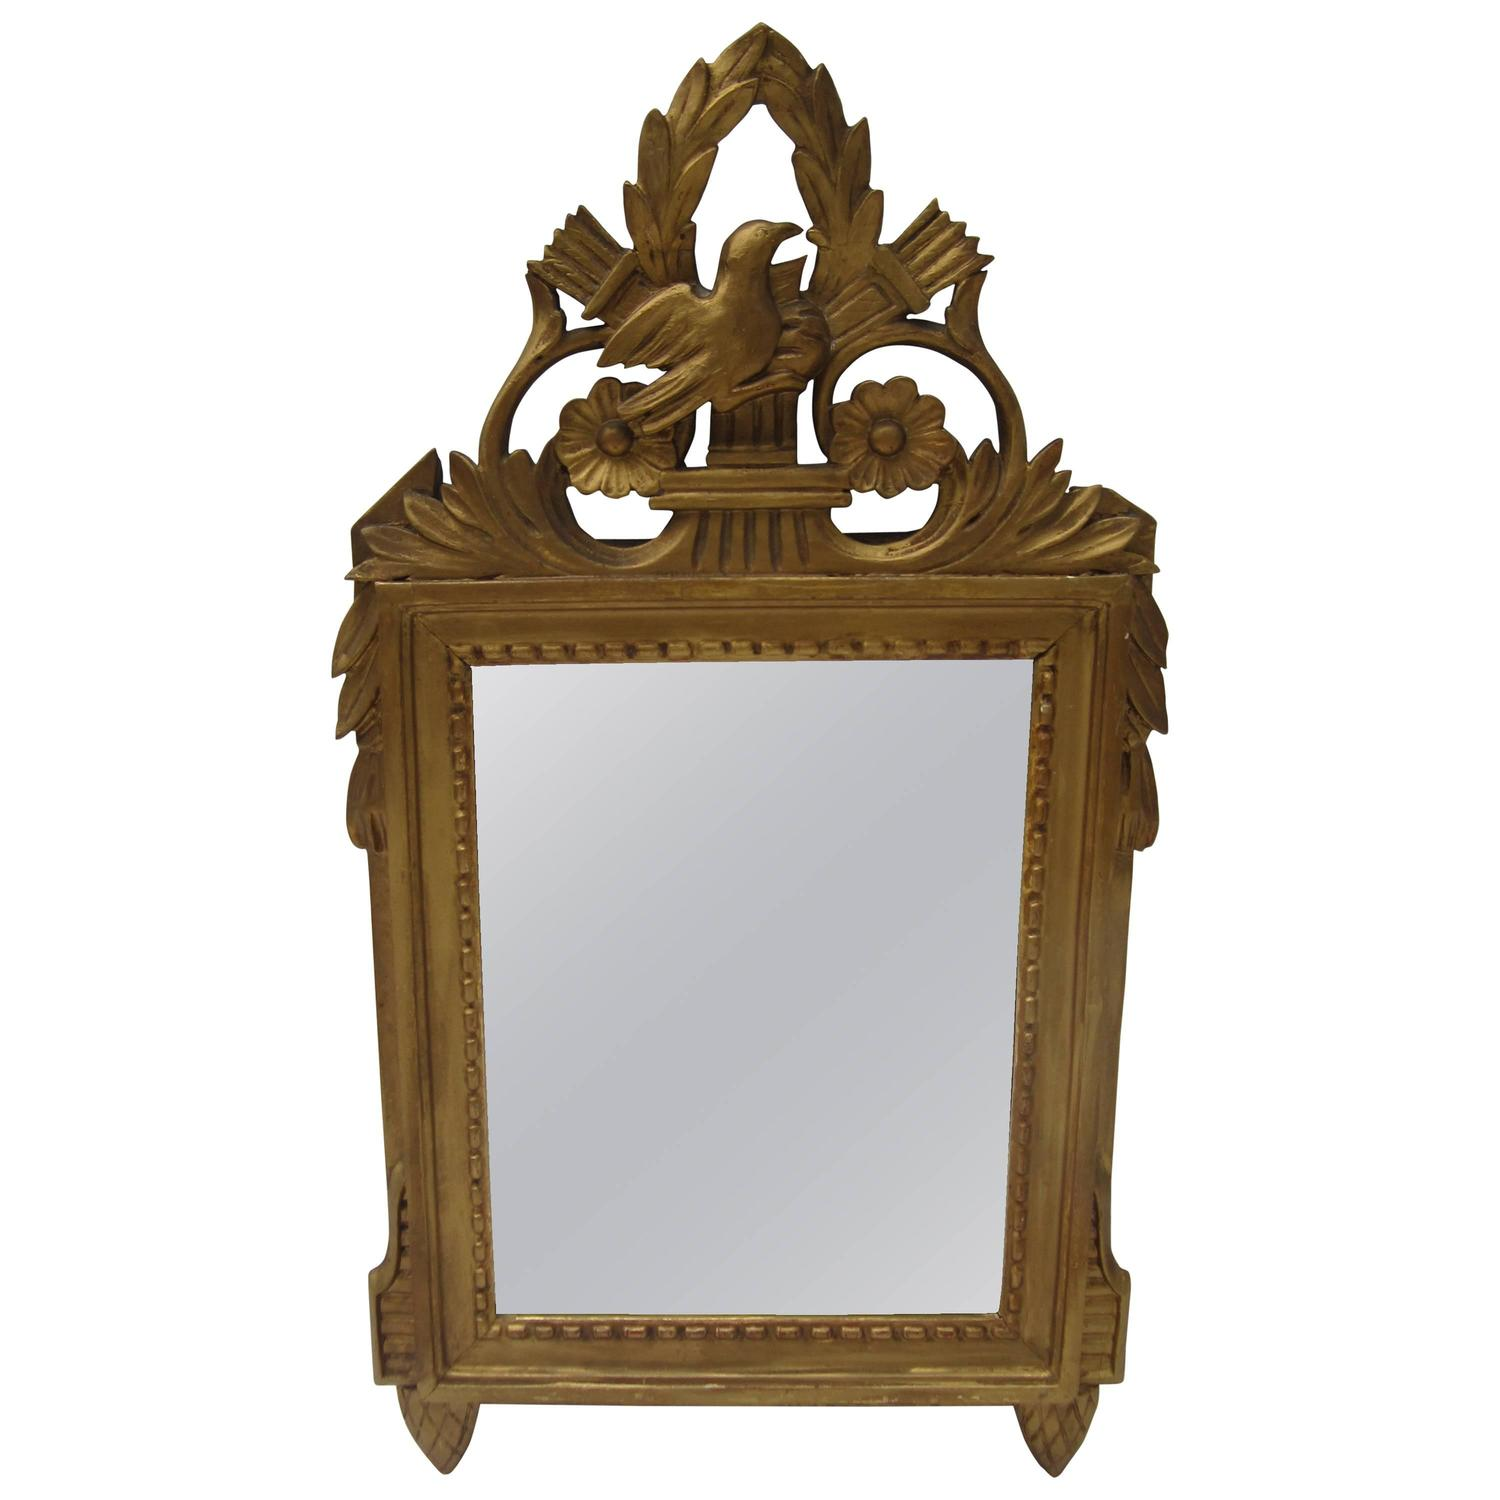 Small french gilt mirror for sale at 1stdibs for Small wall mirrors for sale